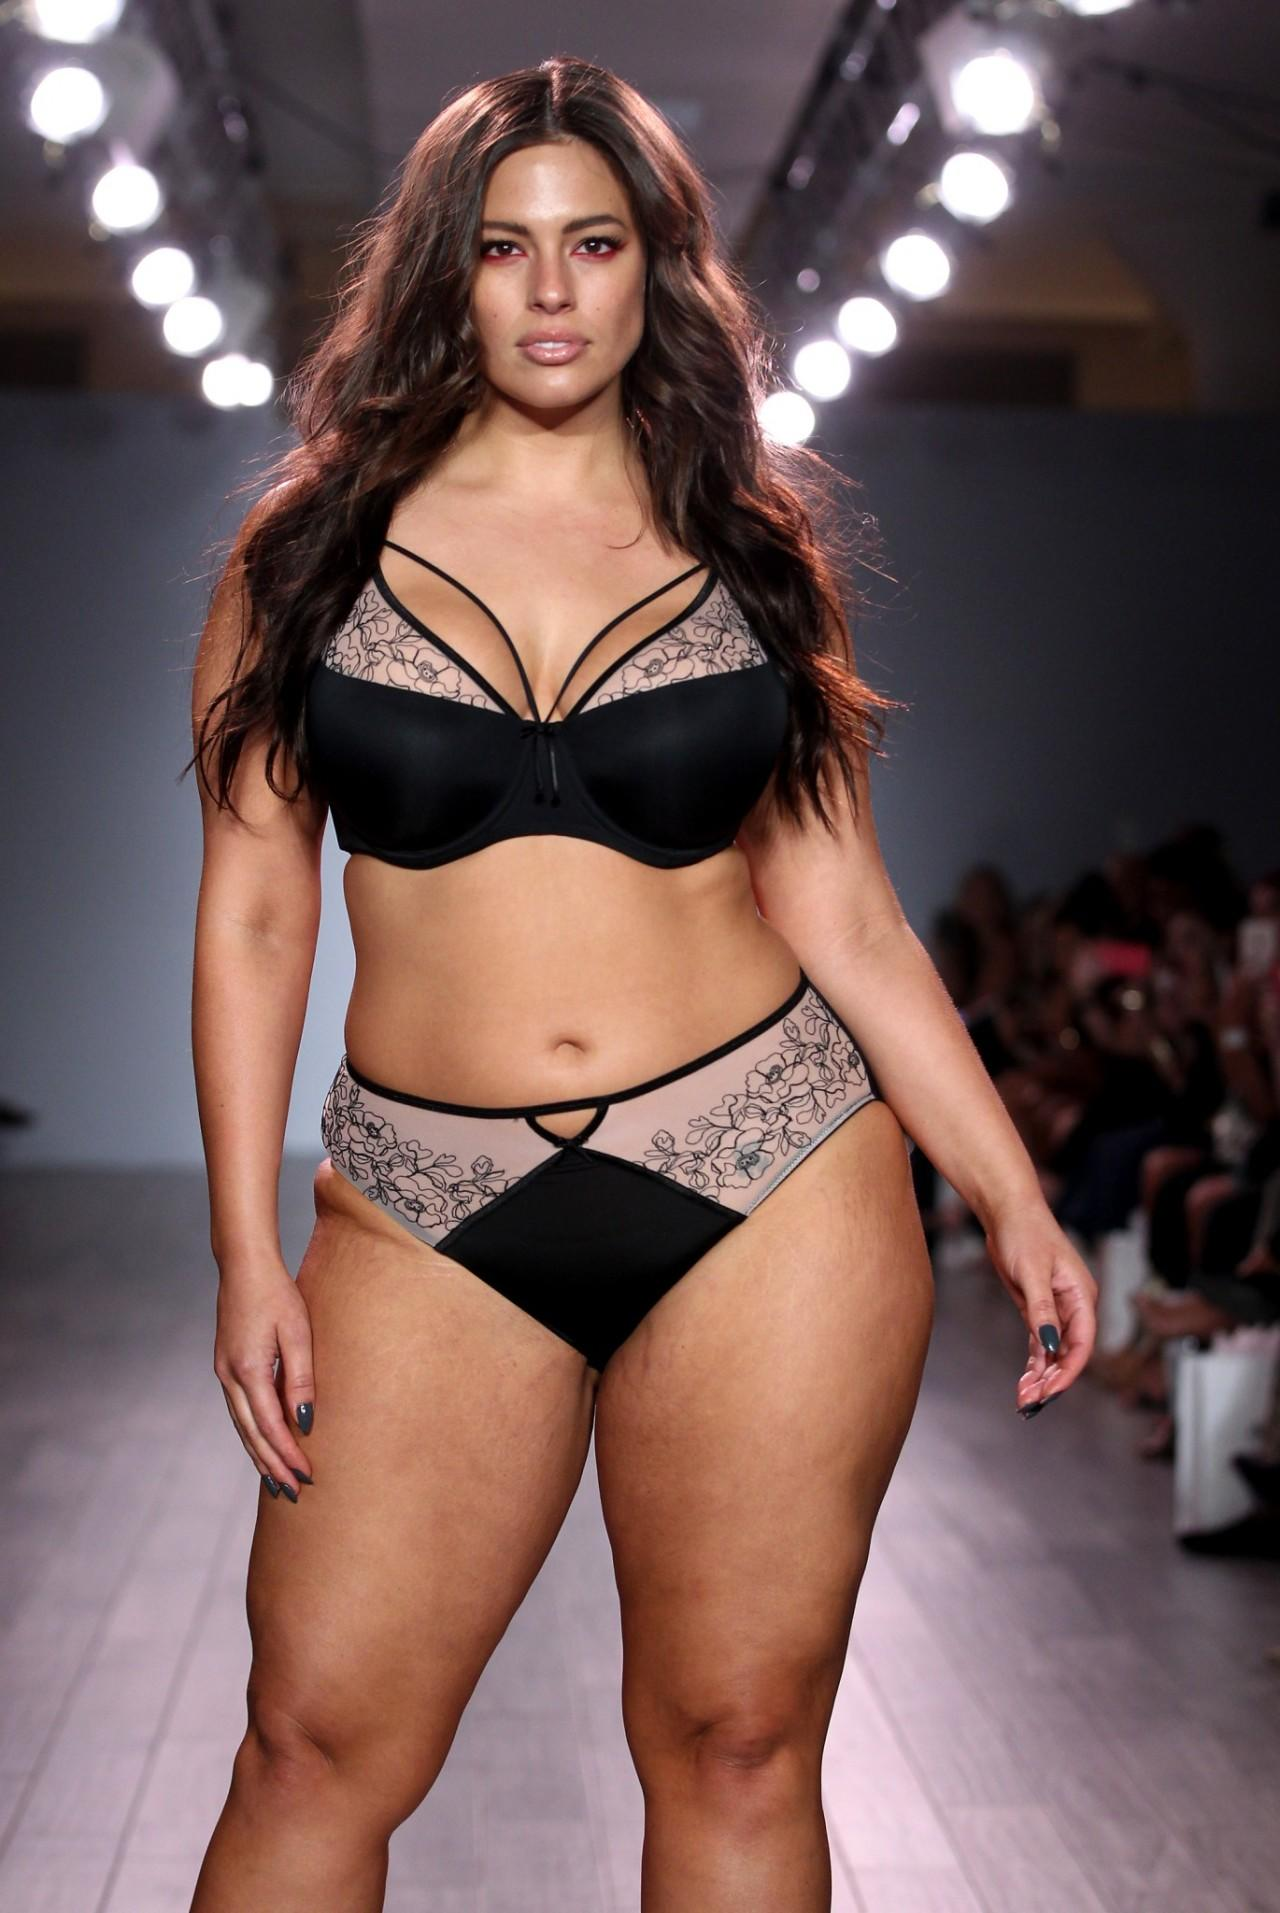 e548e6920e3 This Might Be the Most Body-Positive Runway Show Ever Staged